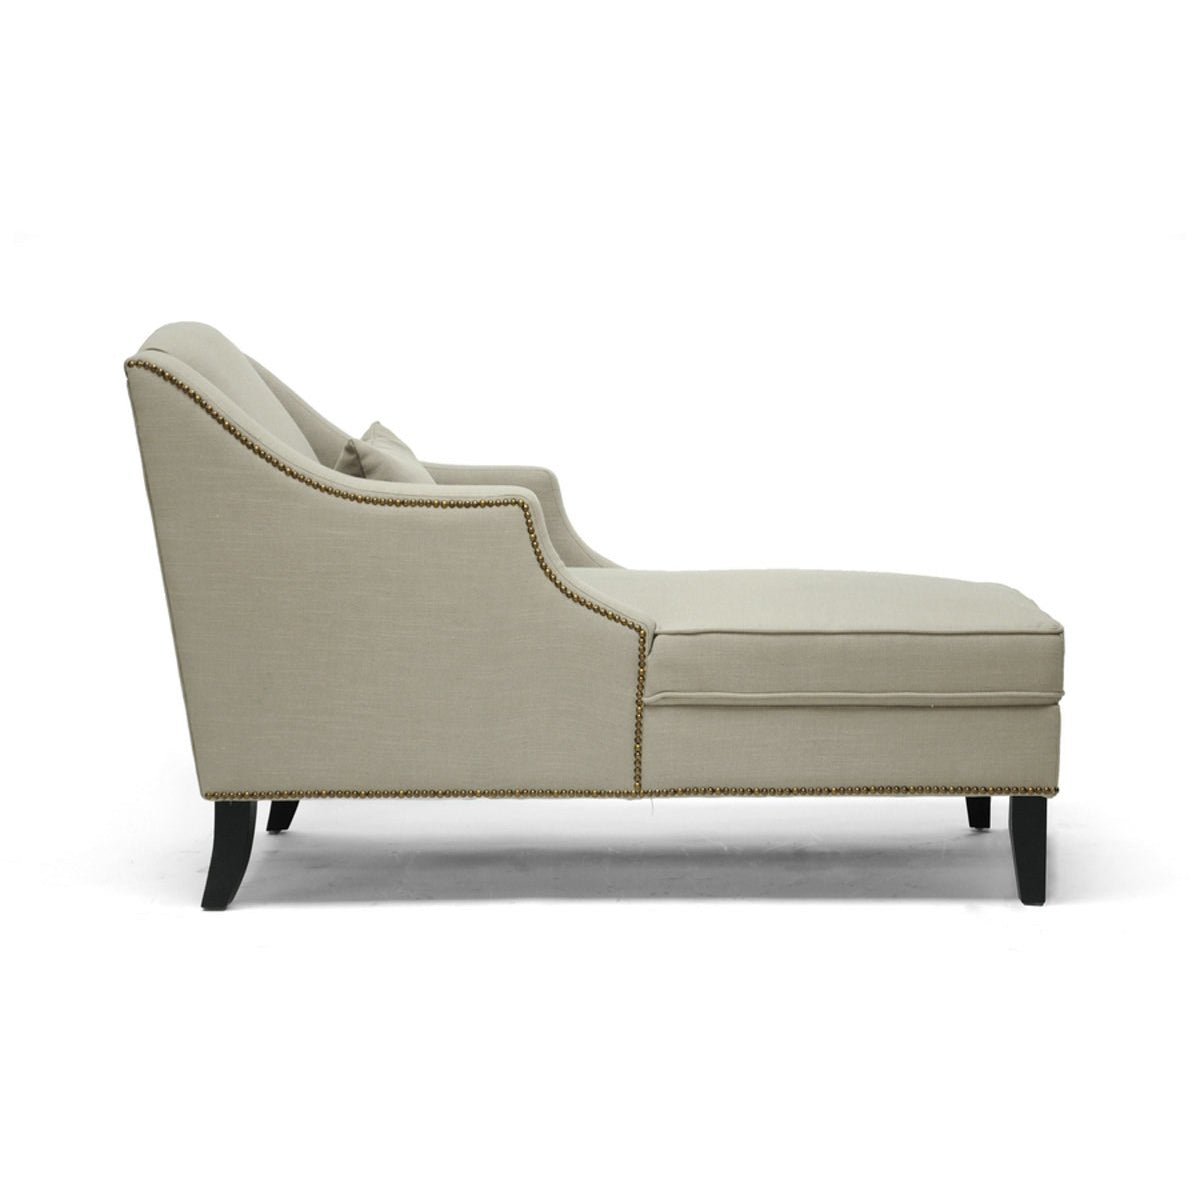 Baxton Studio Asteria Putty Gray Linen Modern Chaise Lounge Baxton Studio-chairs-Minimal And Modern - 1